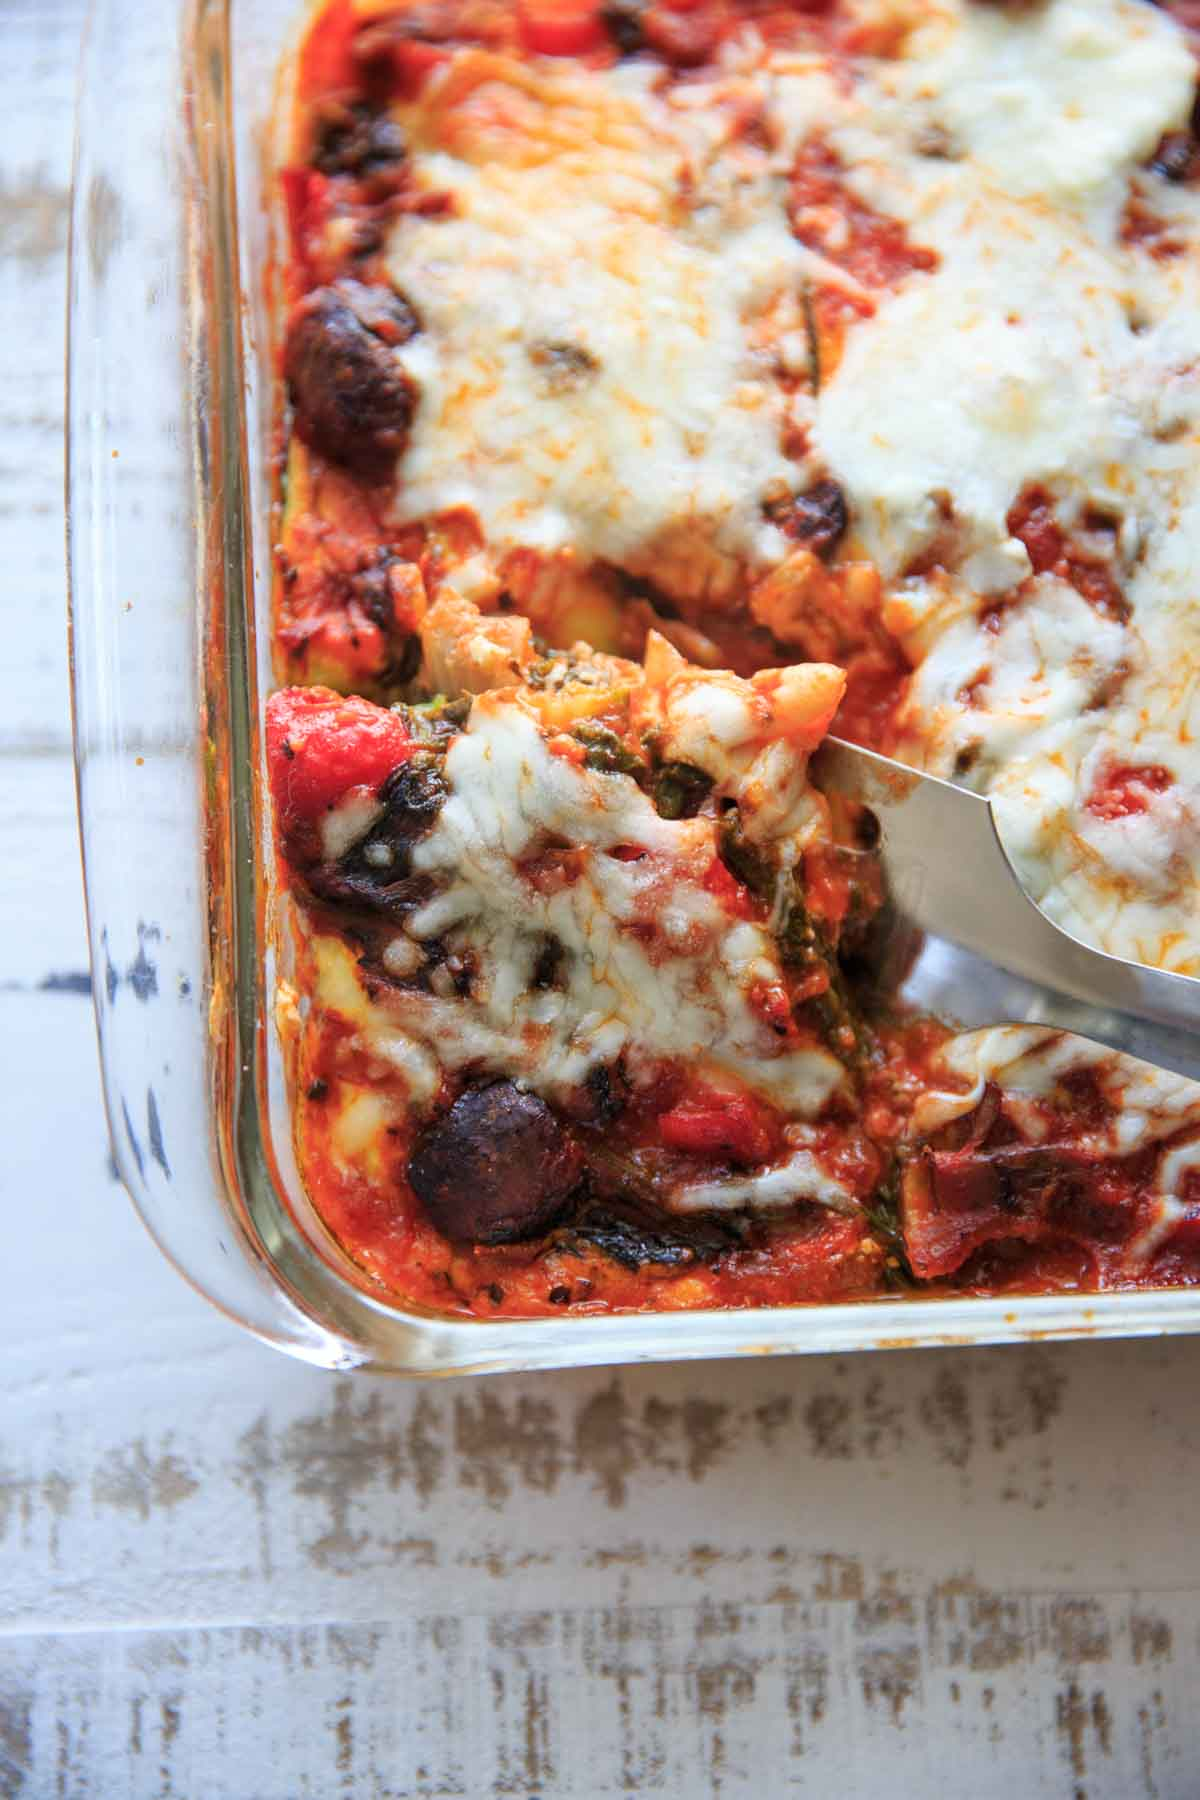 Gluten-free zucchini noodle vegetable lasagna. A way to enjoy lasagna without the pasta! Whether you're trying to cut back on pasta or simply trying to sneak more veggies in your food, this is a way to pack your meatless dinner full of nutrients.